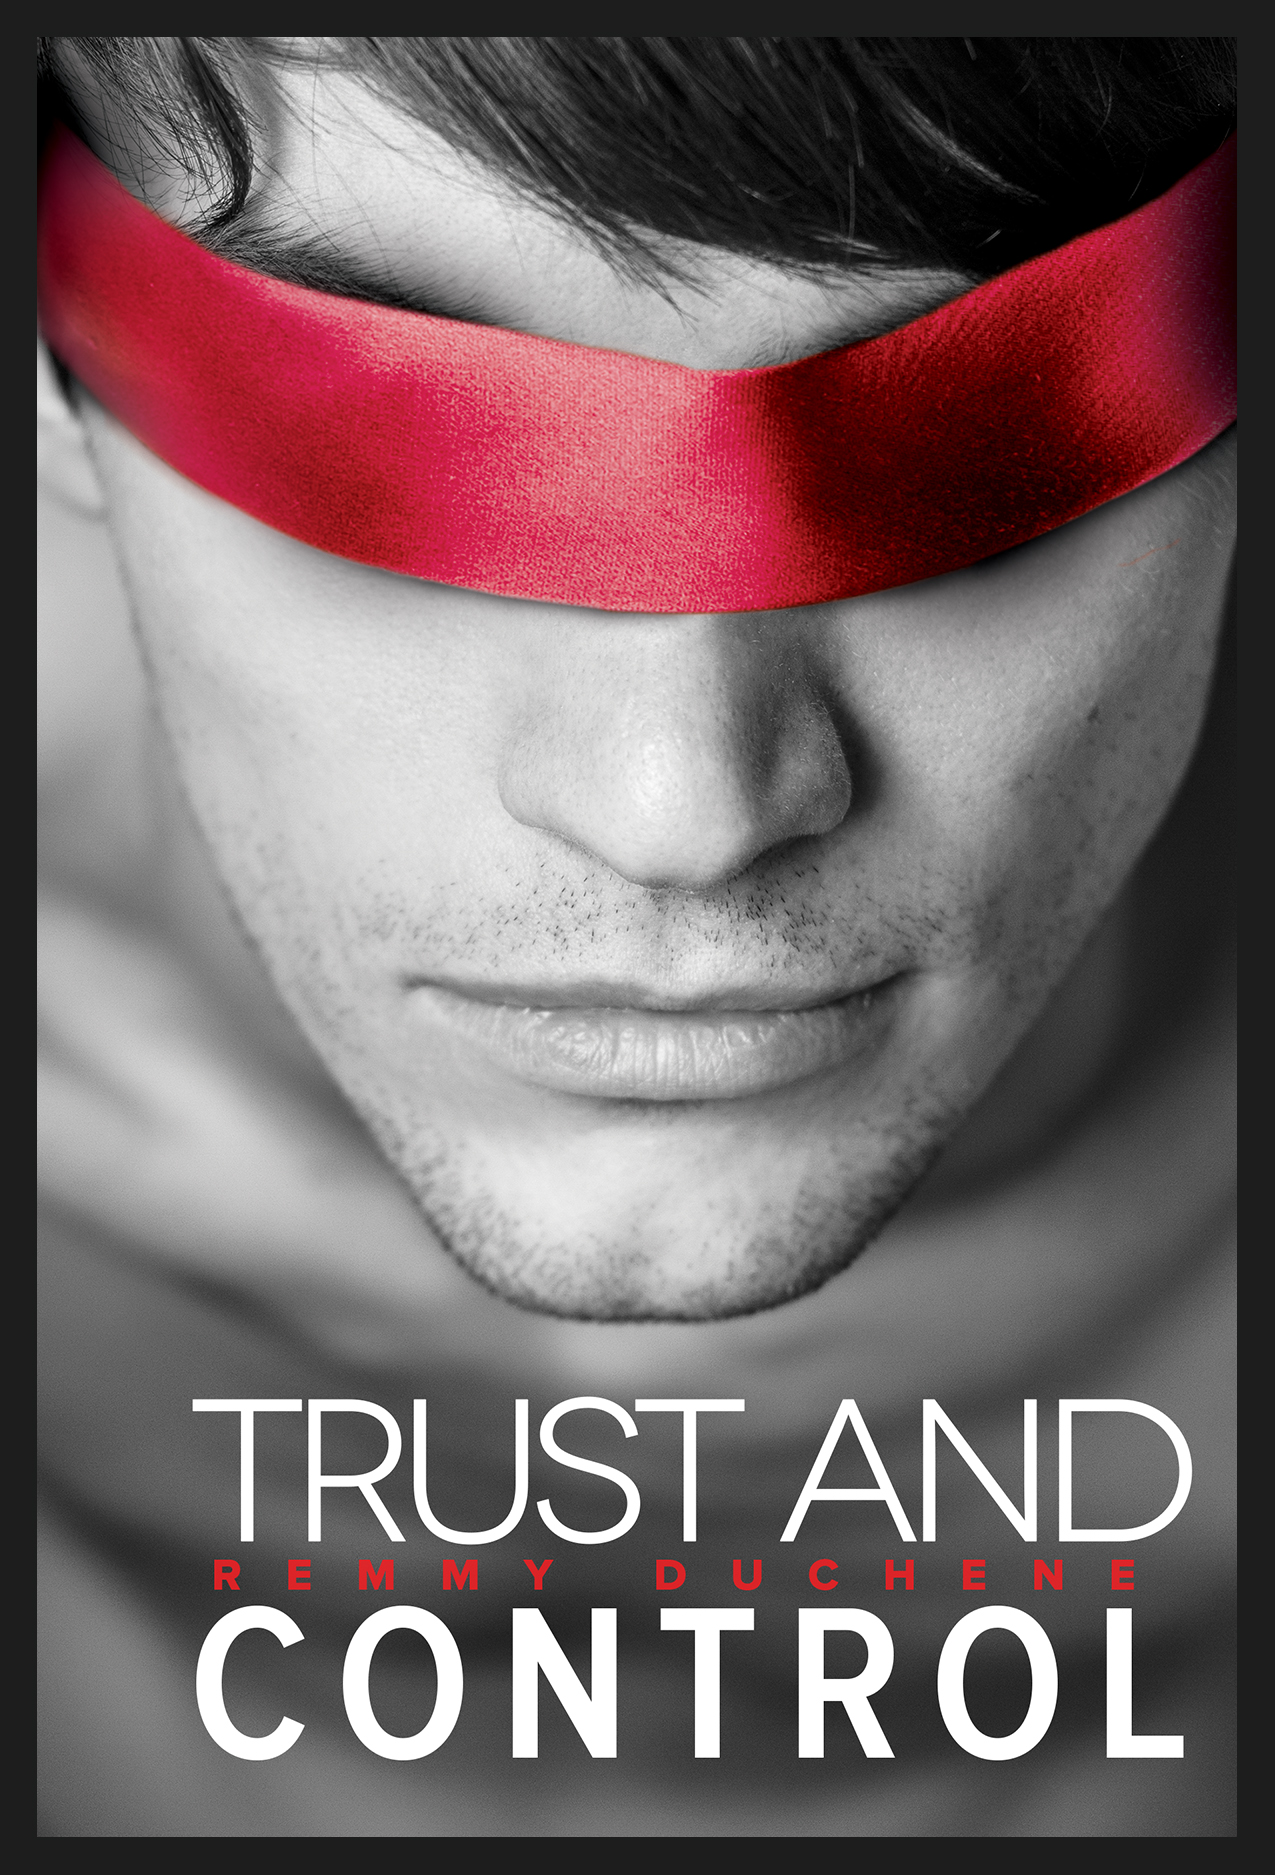 Trust and Control by Remmy Duchene